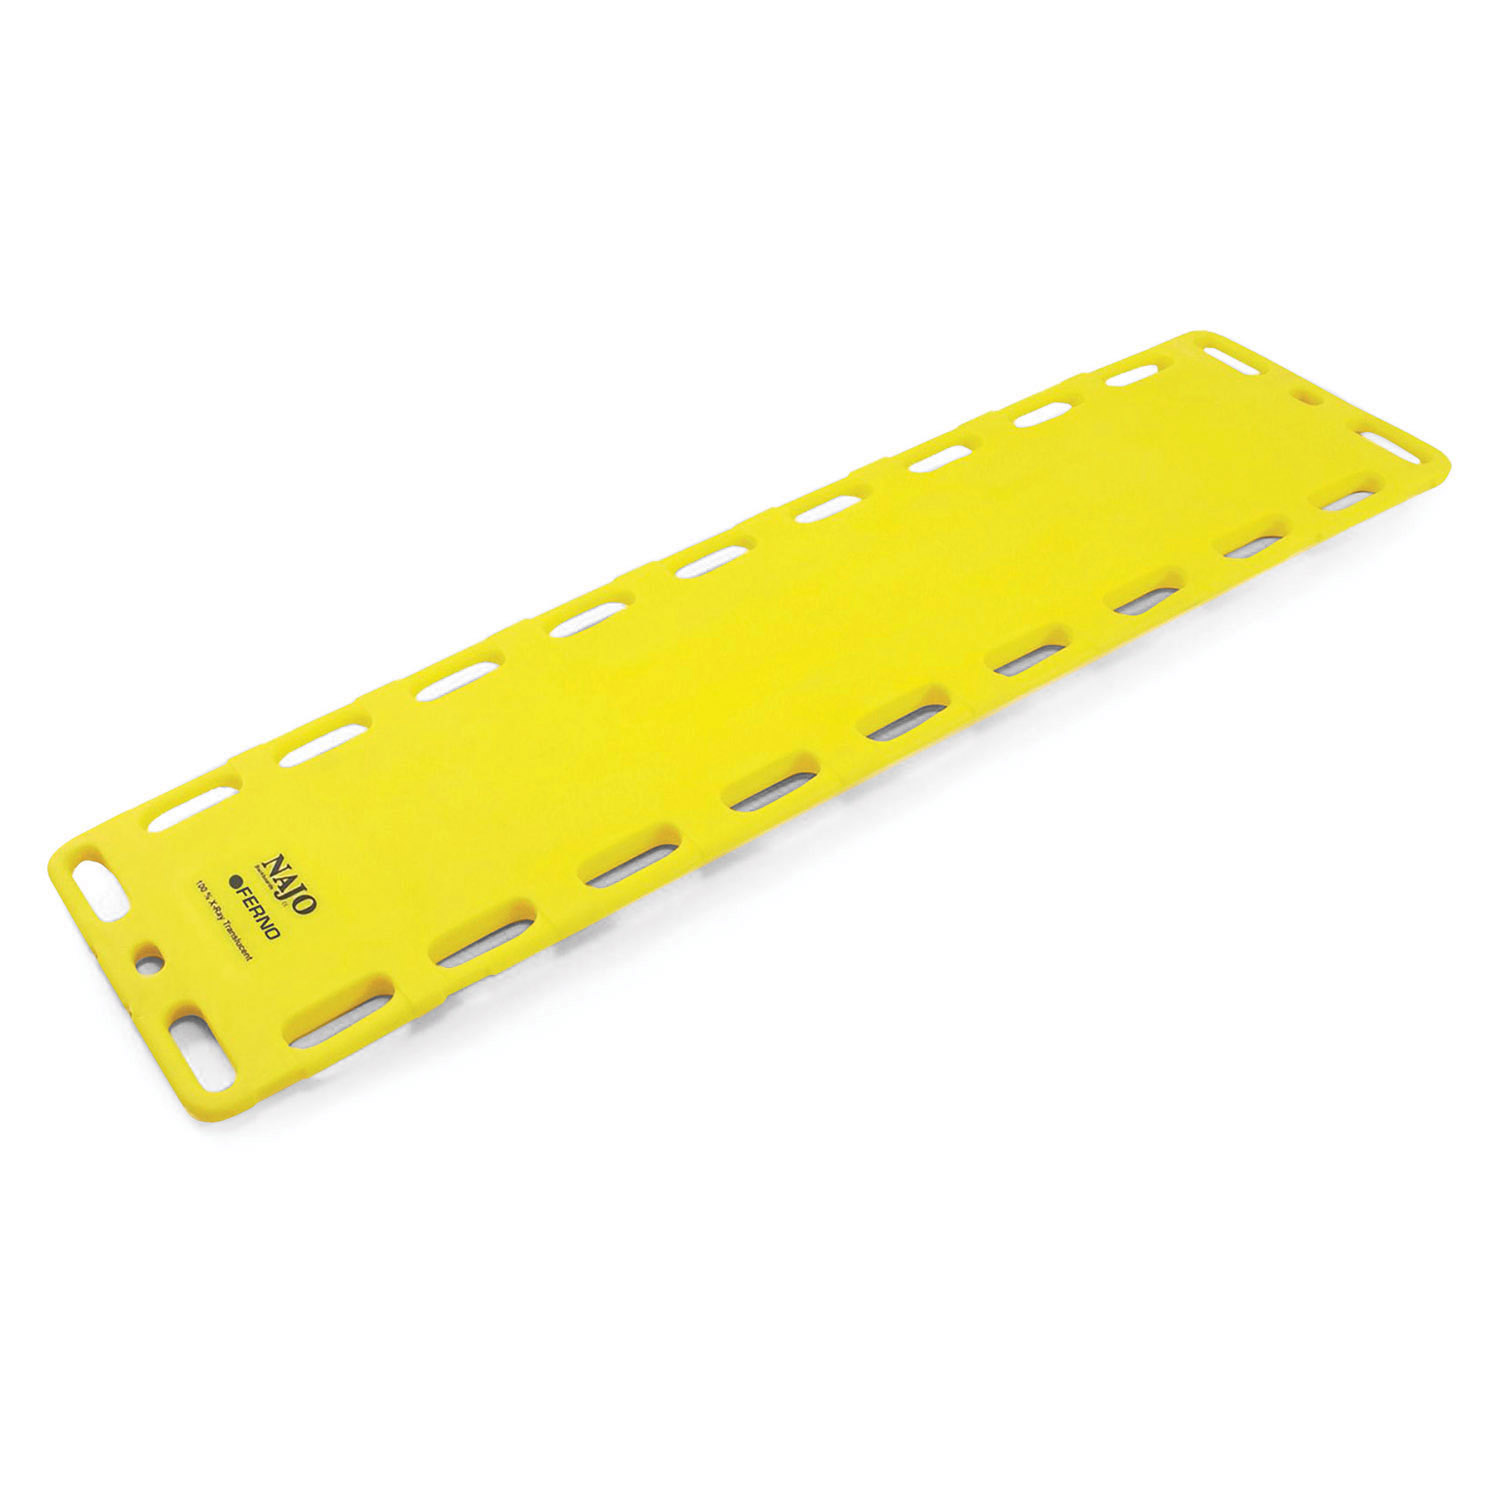 Ferno-Washington Inc. NAJO Rediwide Backboard with 10 Pins